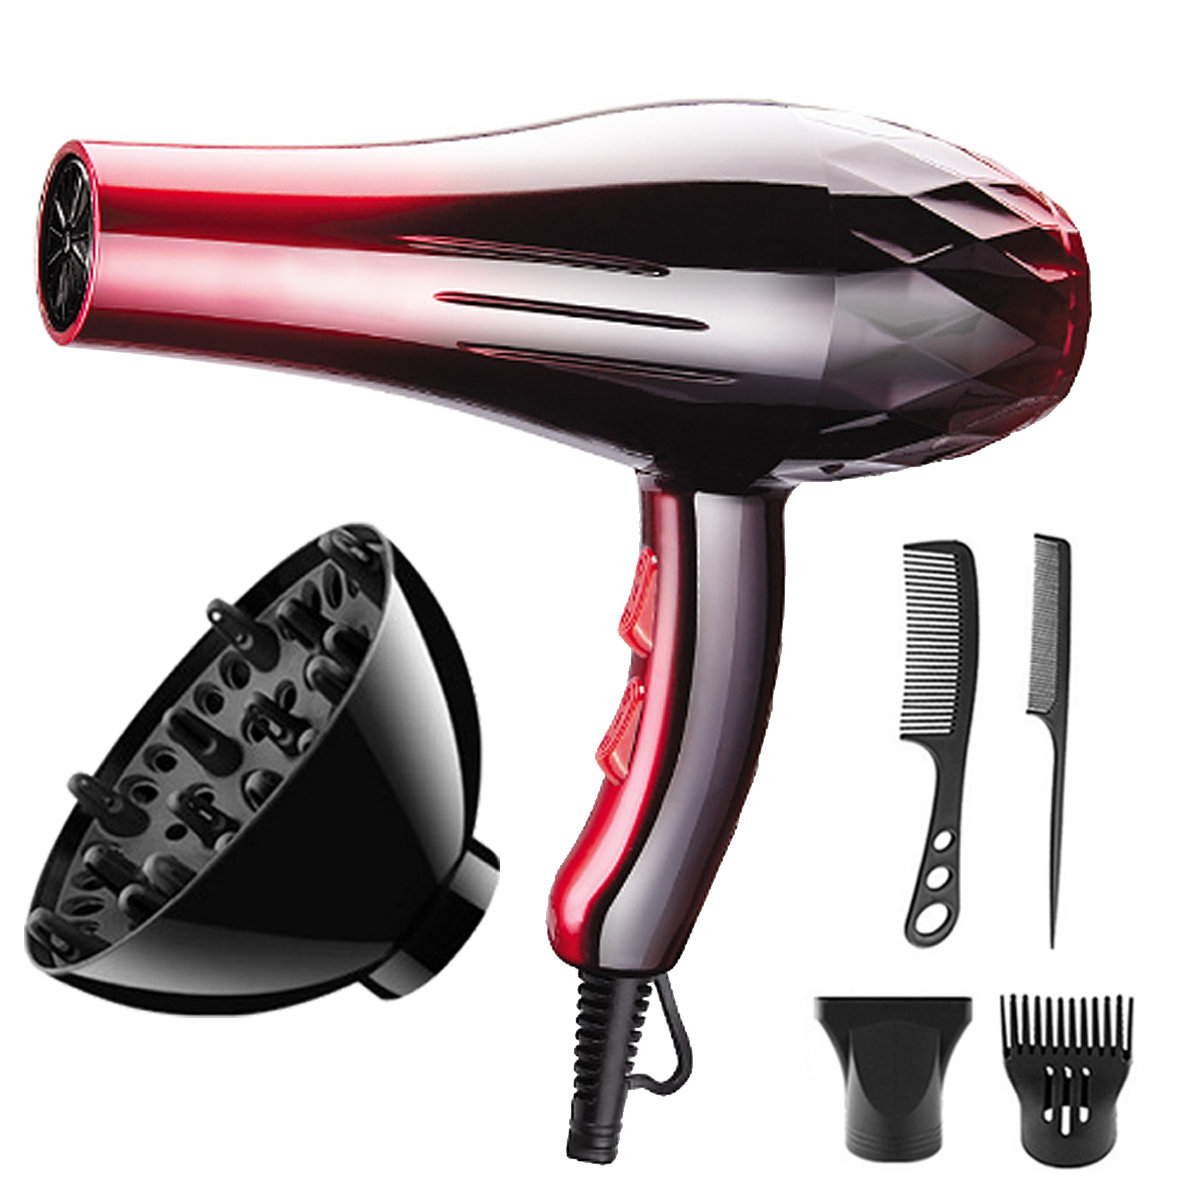 220V 2200W Electric Hair Dryer Heat Blower Beauty Const